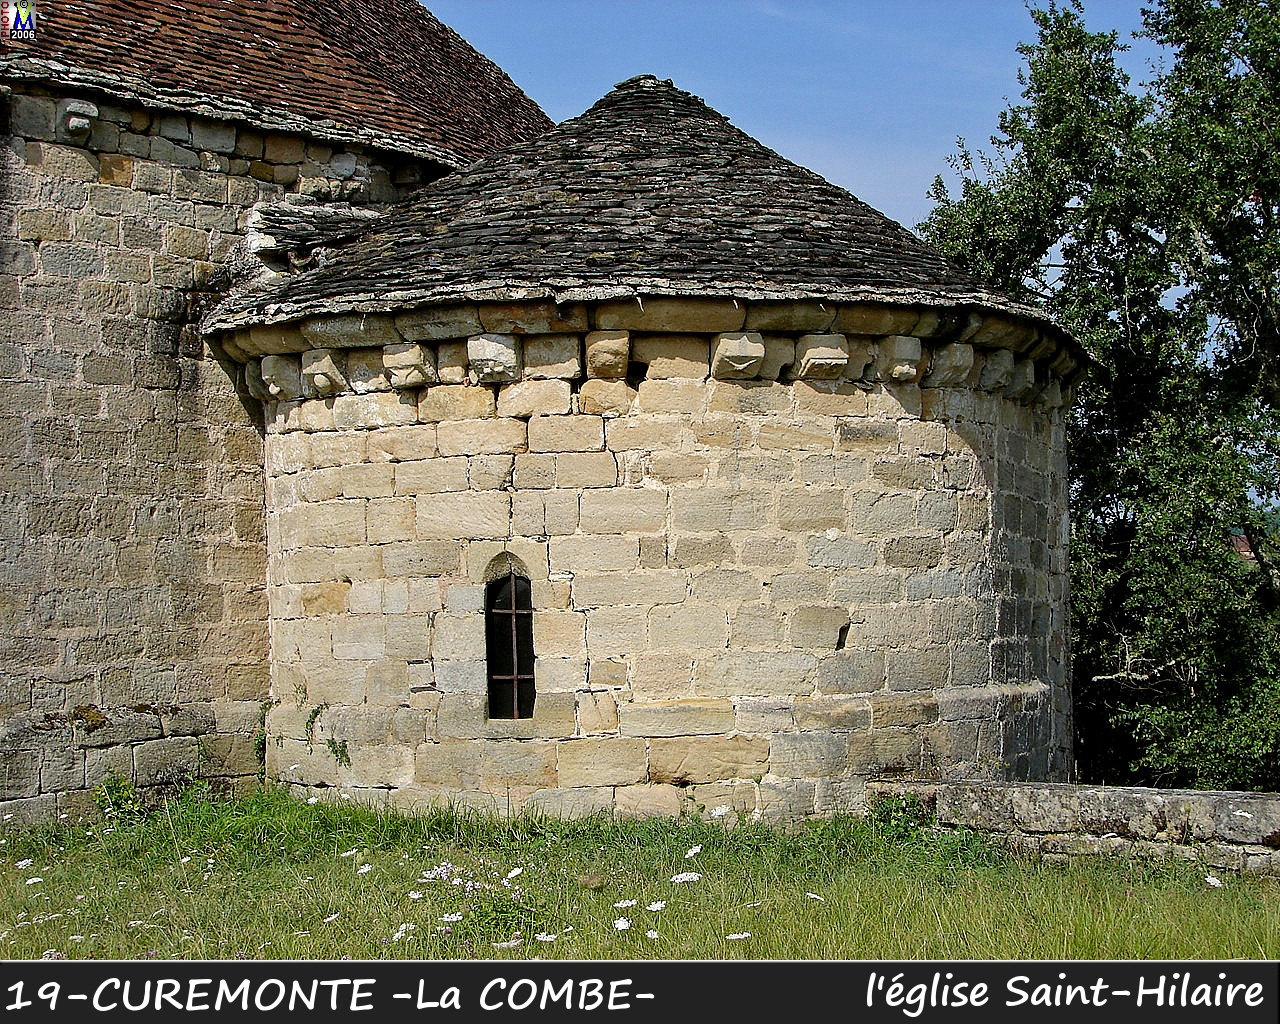 19CUREMONTEzCOMBE_eglise_104.jpg